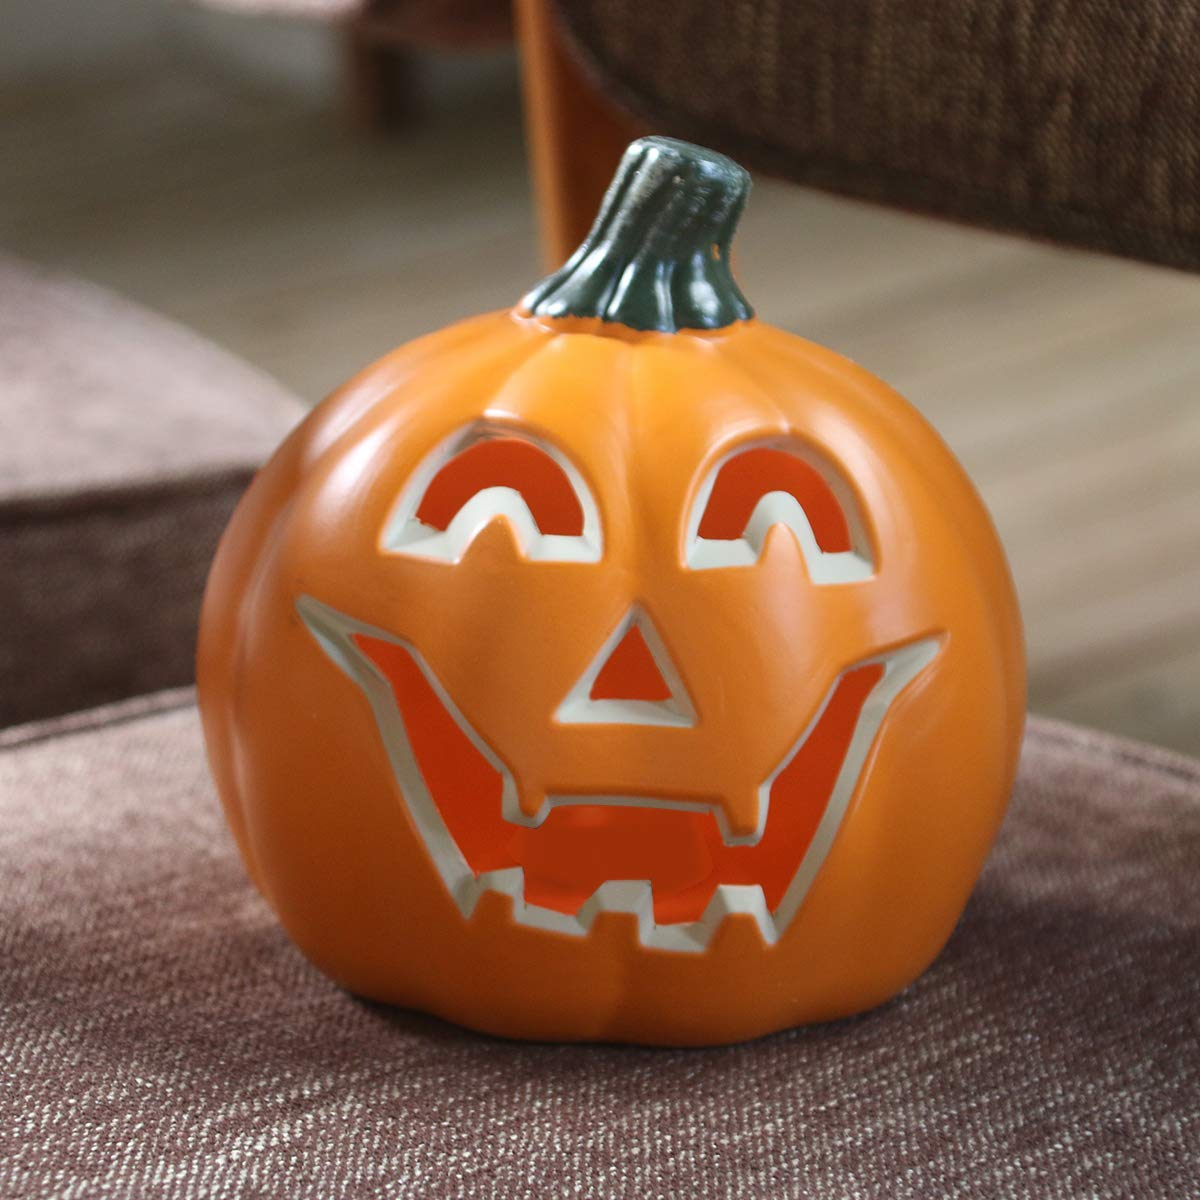 Round Lightened Pumpkin for Porch Front Door 10 Fireplace Decorations Jack O Lantern Decorations for Halloween Party GameXcel Halloween Pumpkin JackoLantern